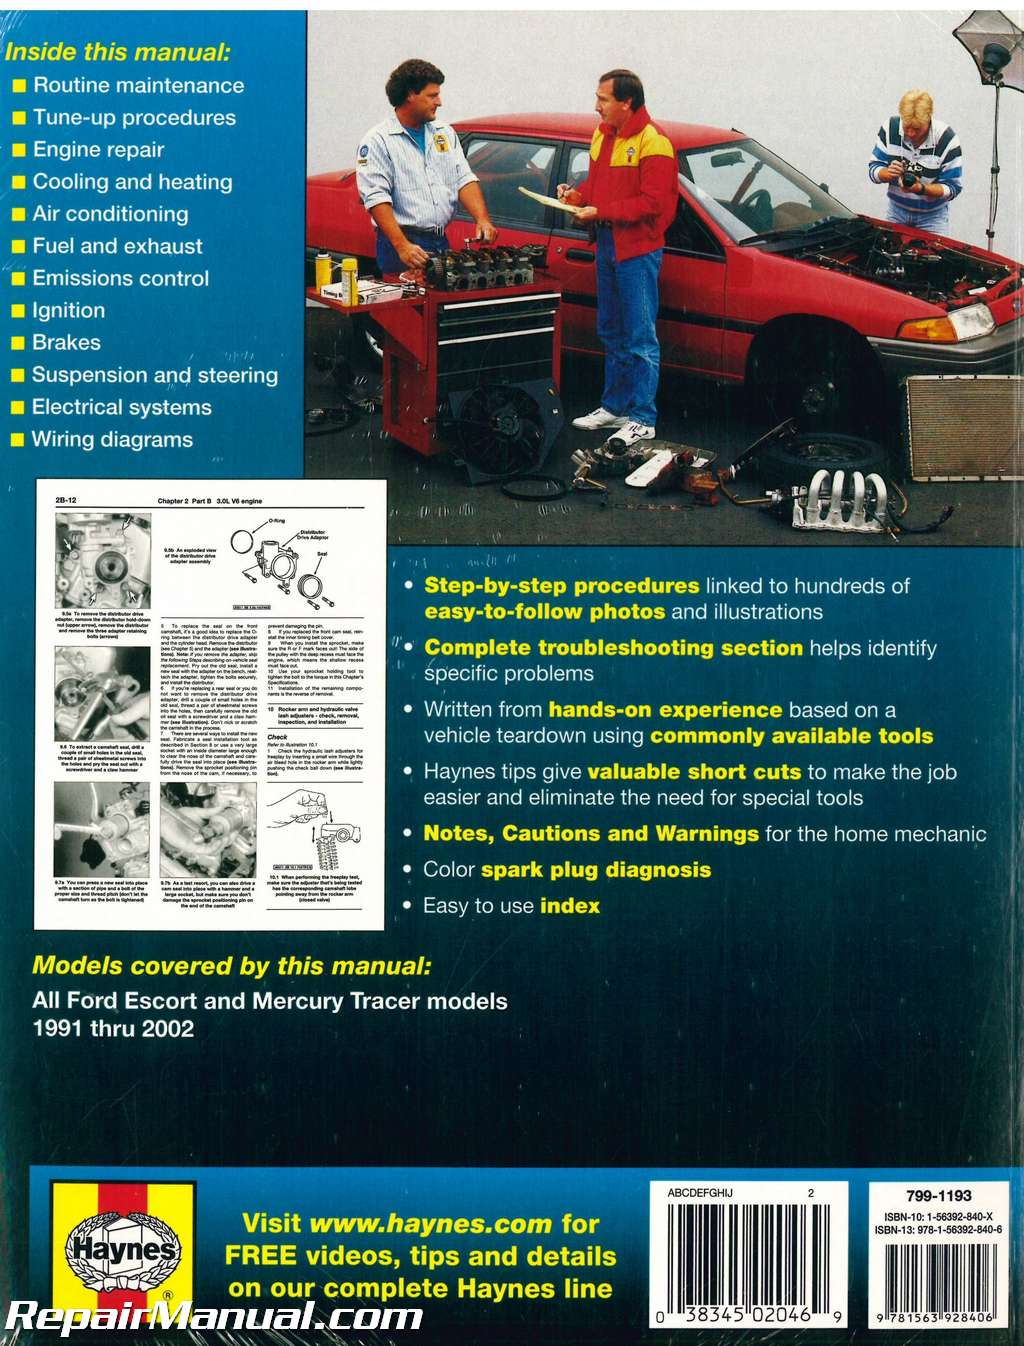 1991-2002 Ford Escort and Mercury Tracer Automobile Repair Manual by Haynes